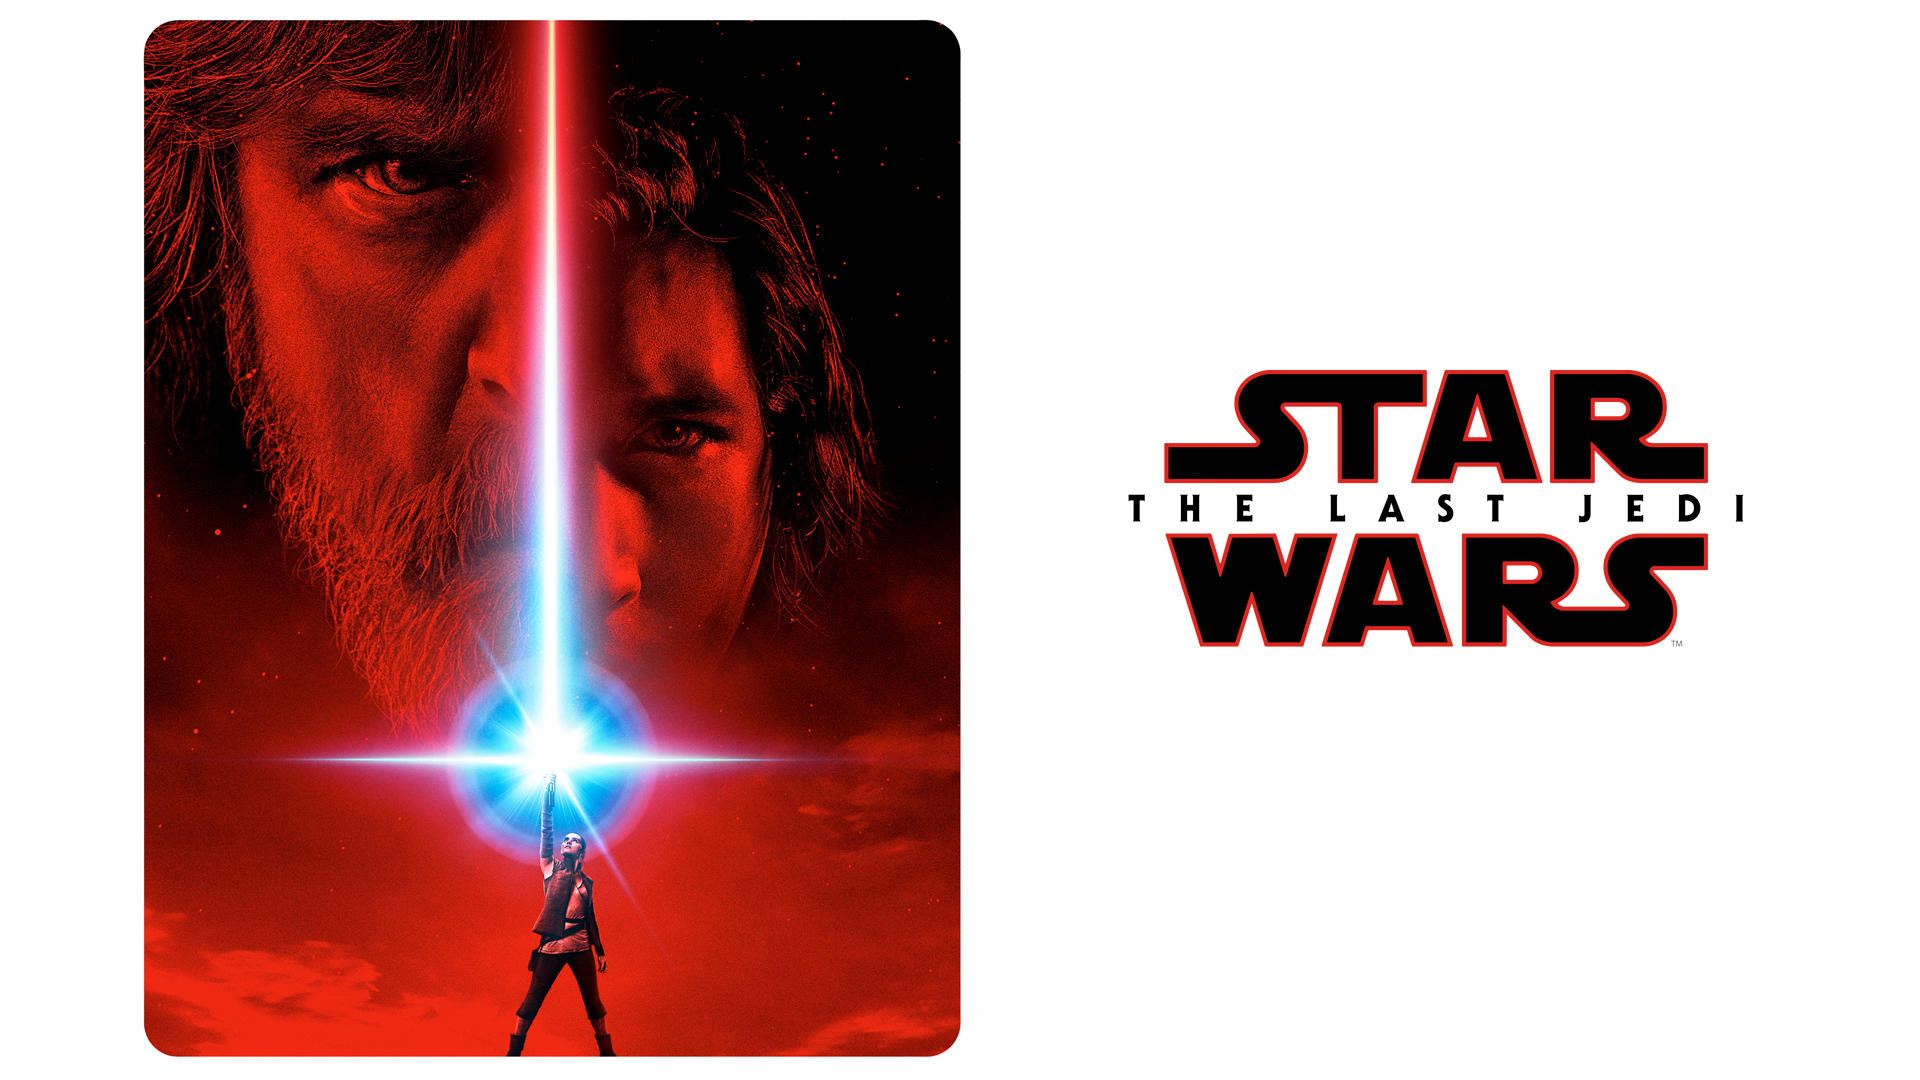 Star Wars The Last Jedi Wallpaper Teaser Poster By Spirit Of